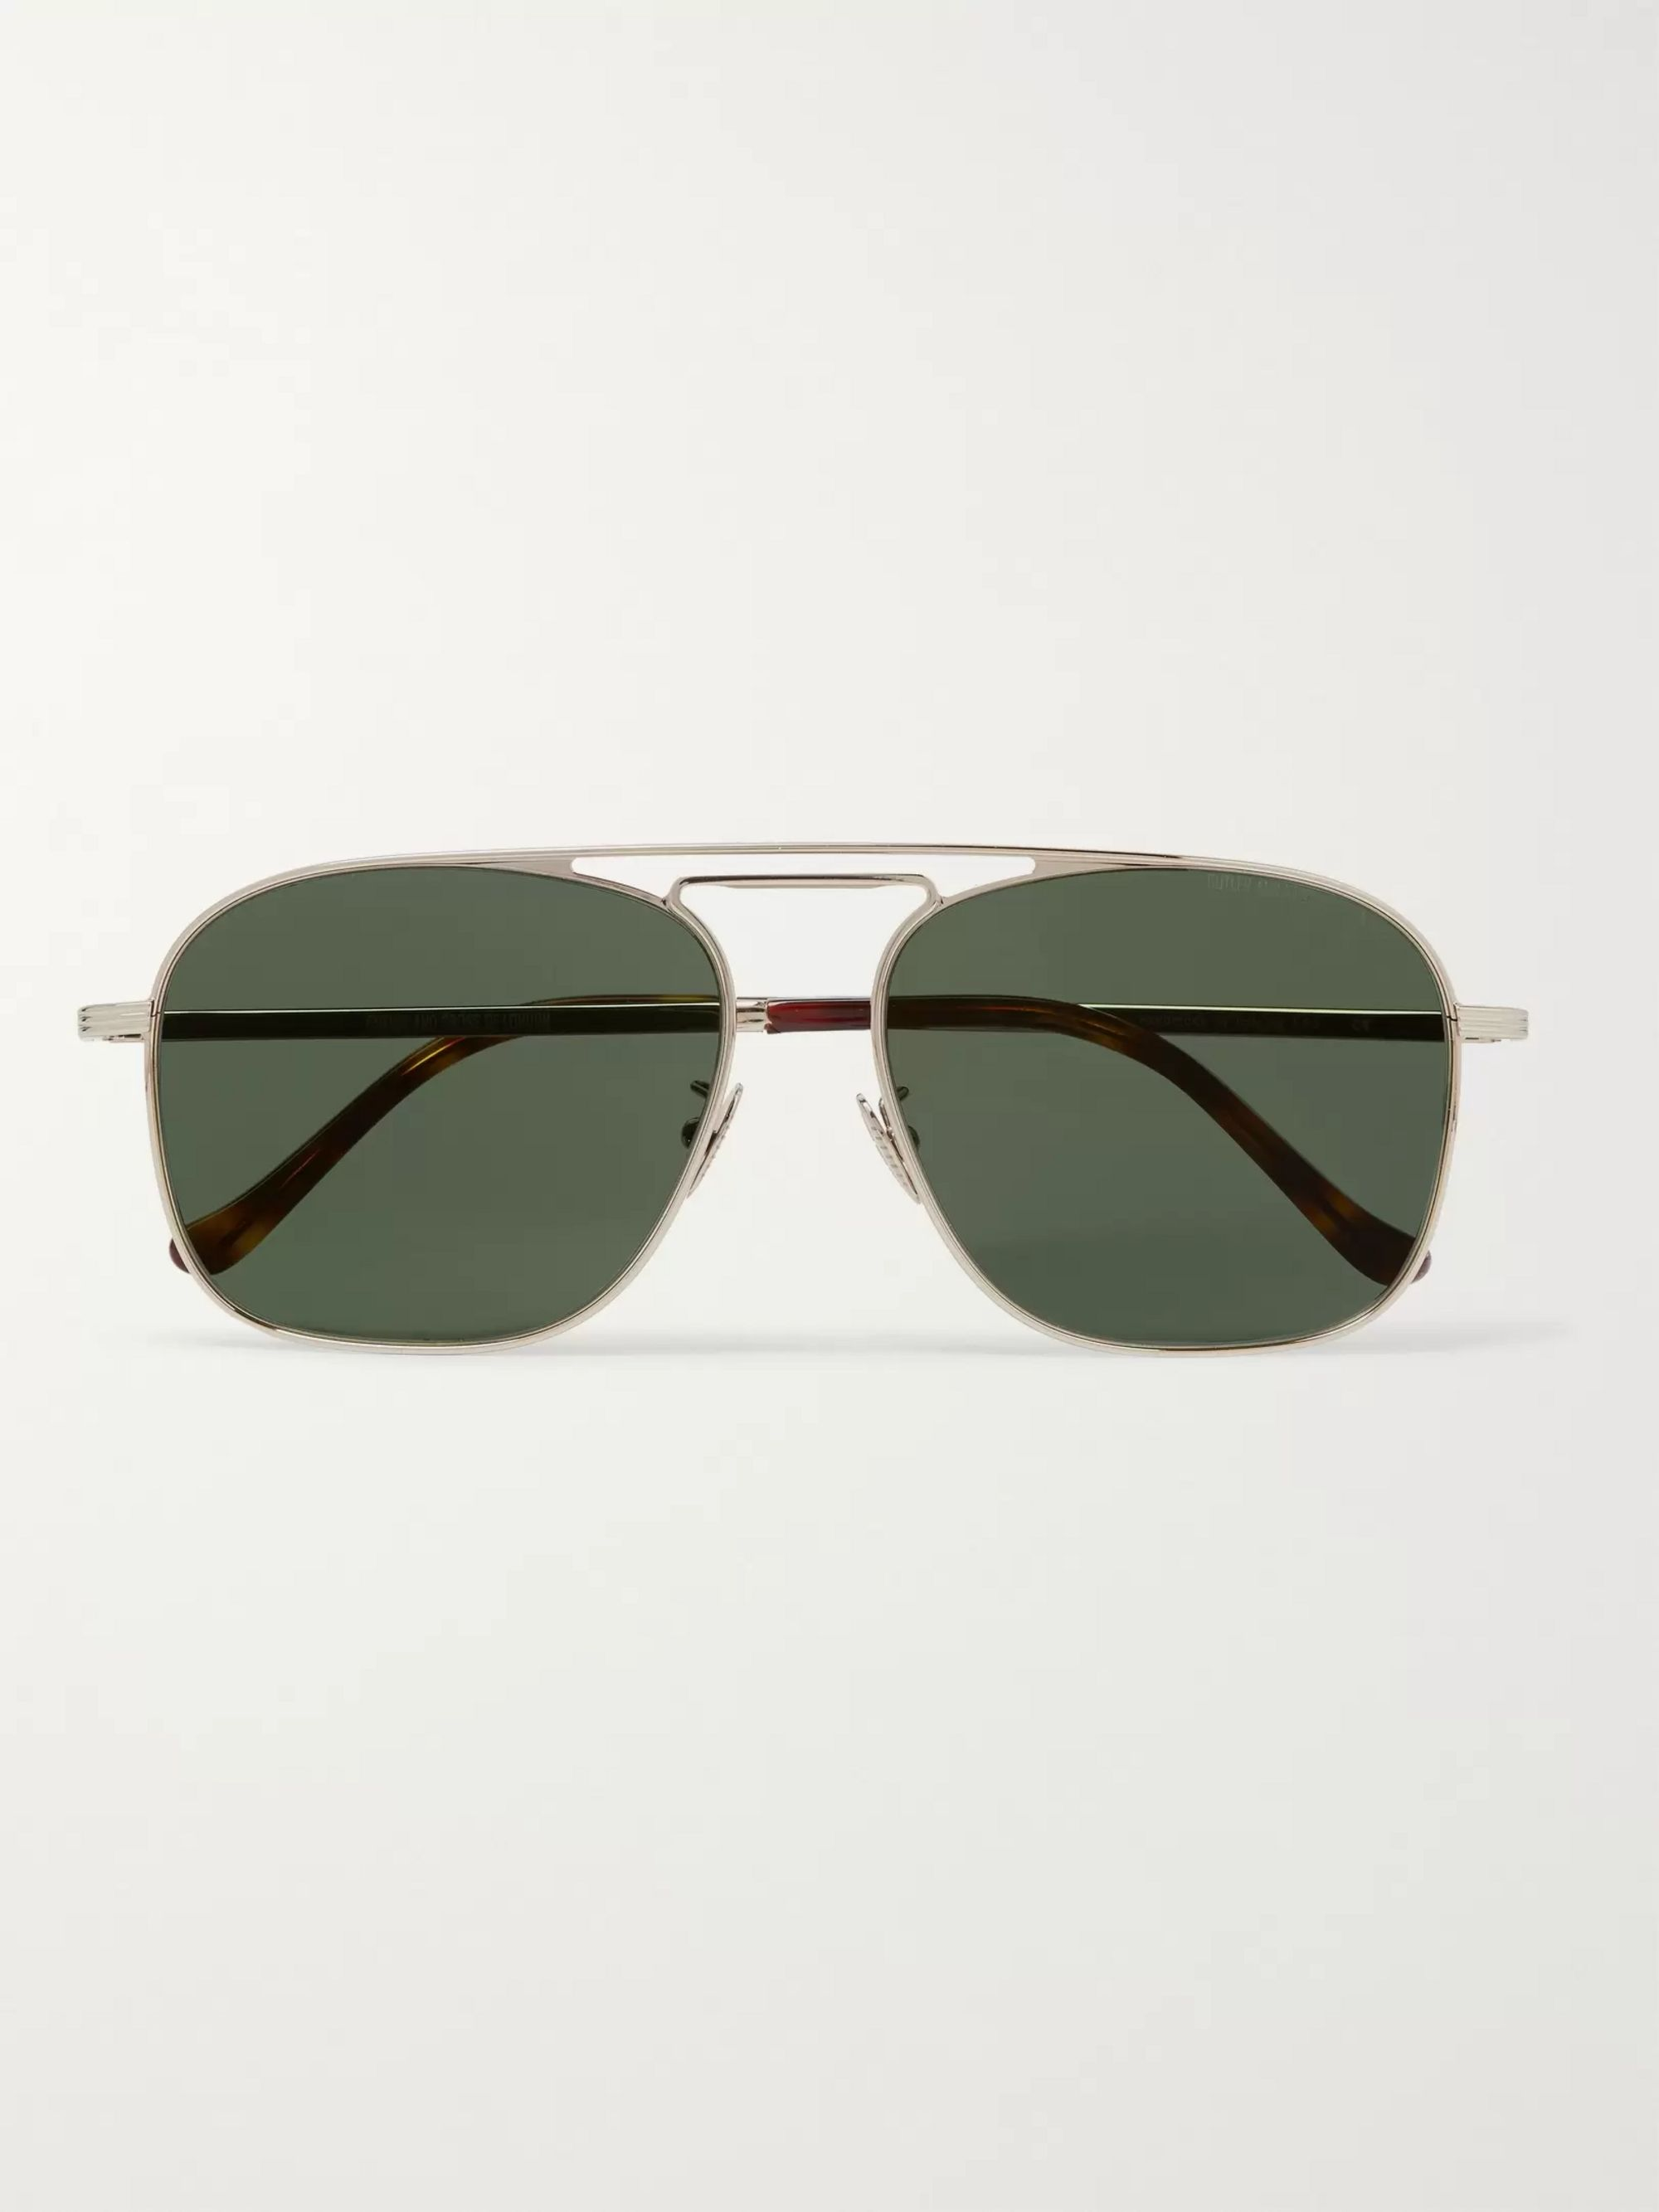 Cutler and Gross Aviator-Style Gold-Tone Sunglasses